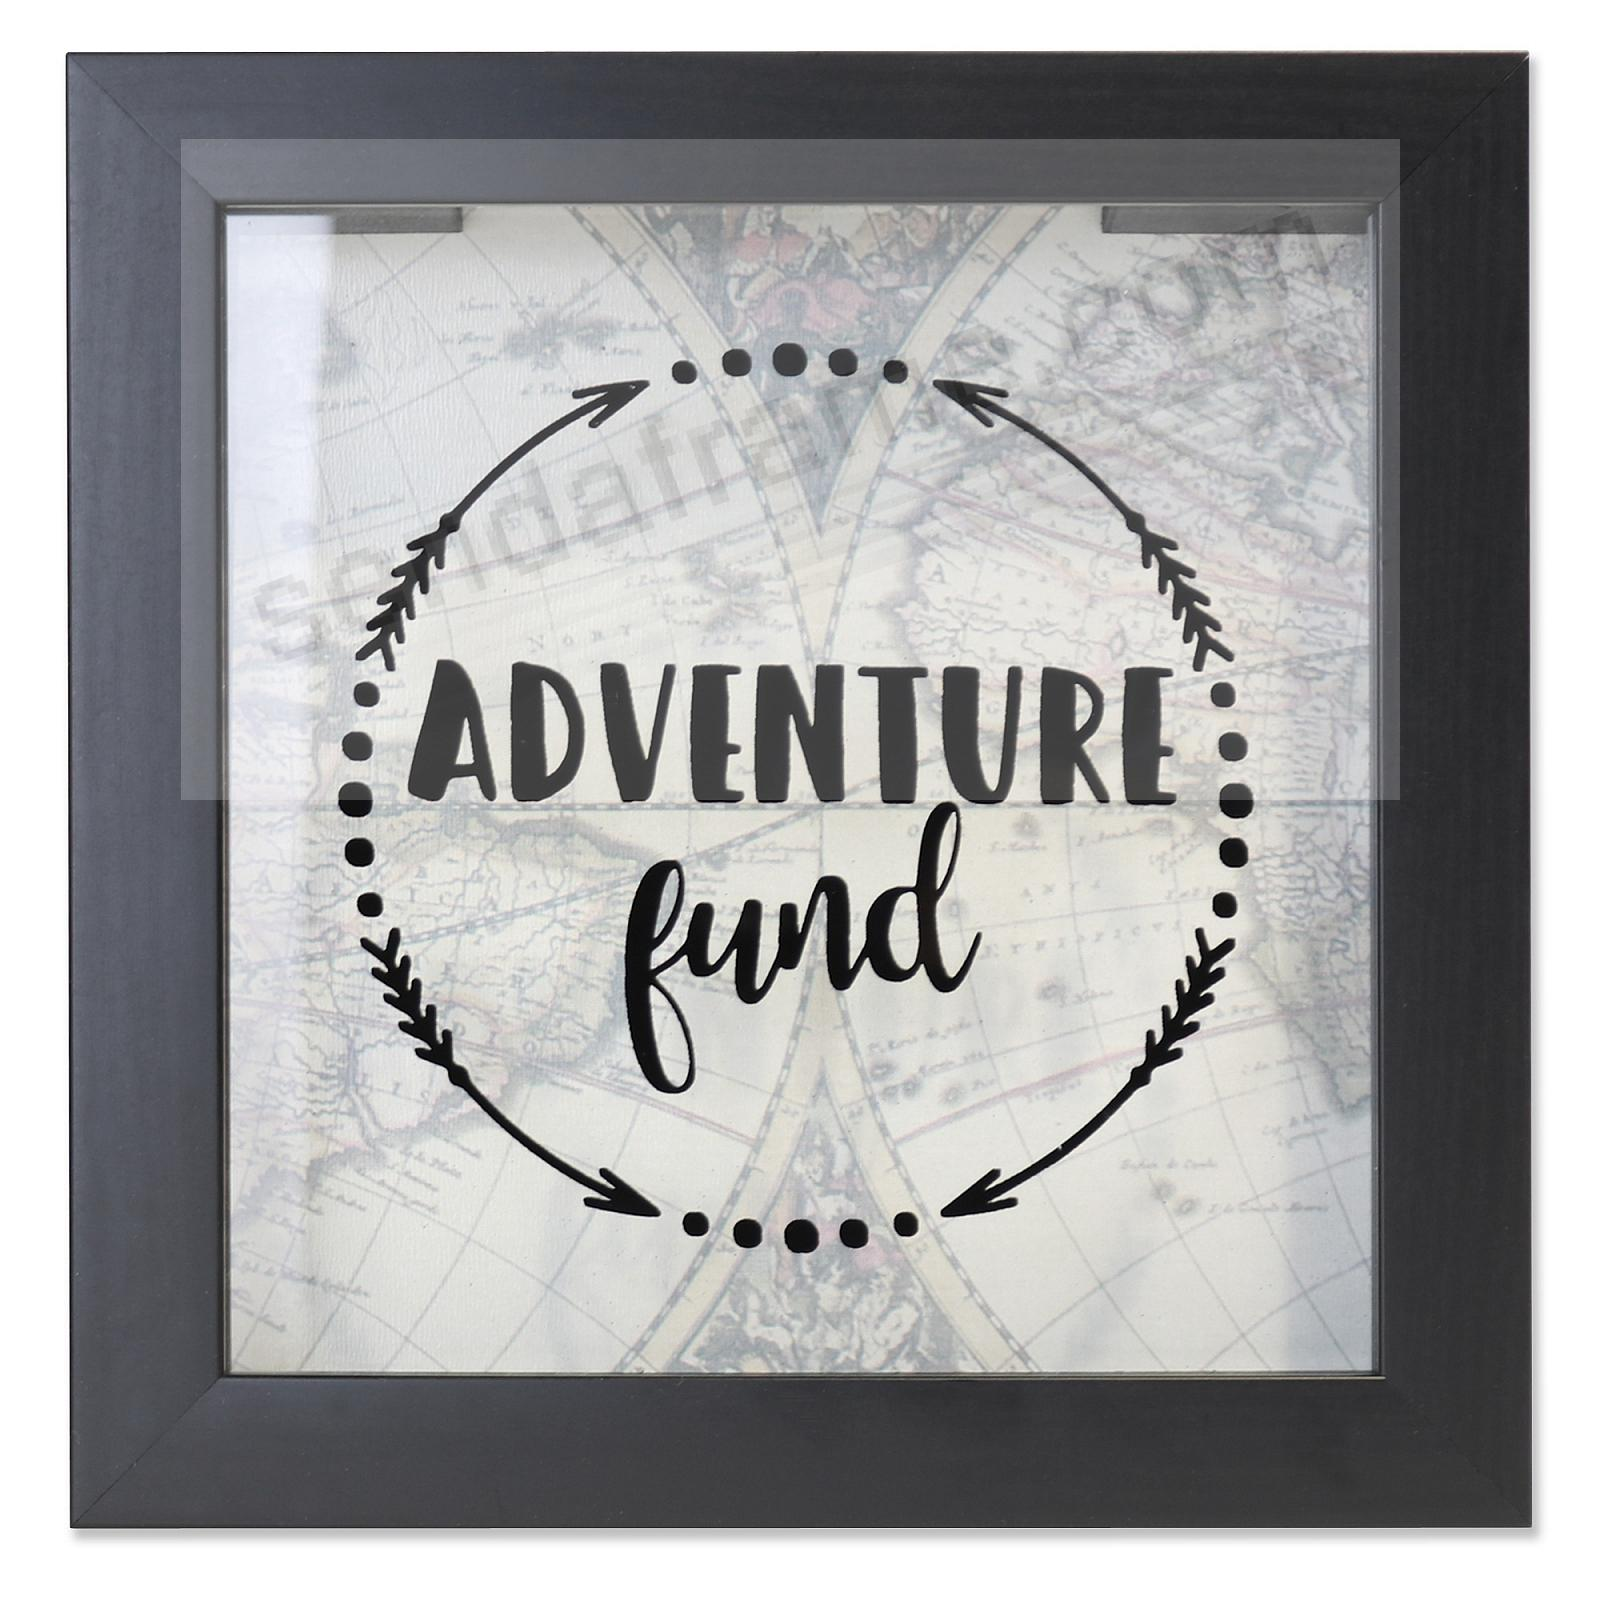 ADVENTURE FUND Black ShadowBox Bank frame by Lawrence®